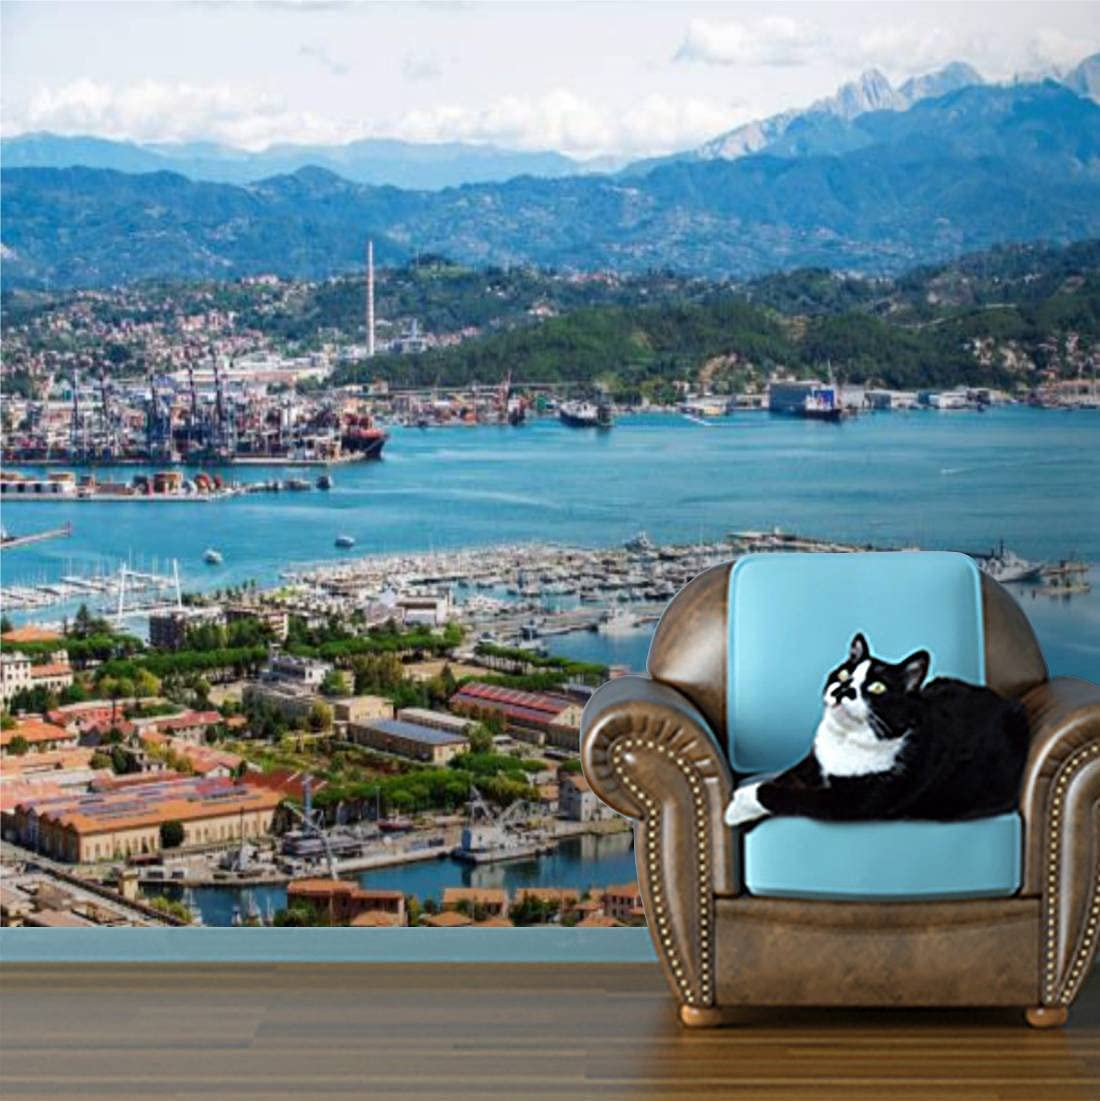 Wallpaper Panorama of La Directly managed store Spezia Cheap mail order sales Removable Self Italy in Adhesive